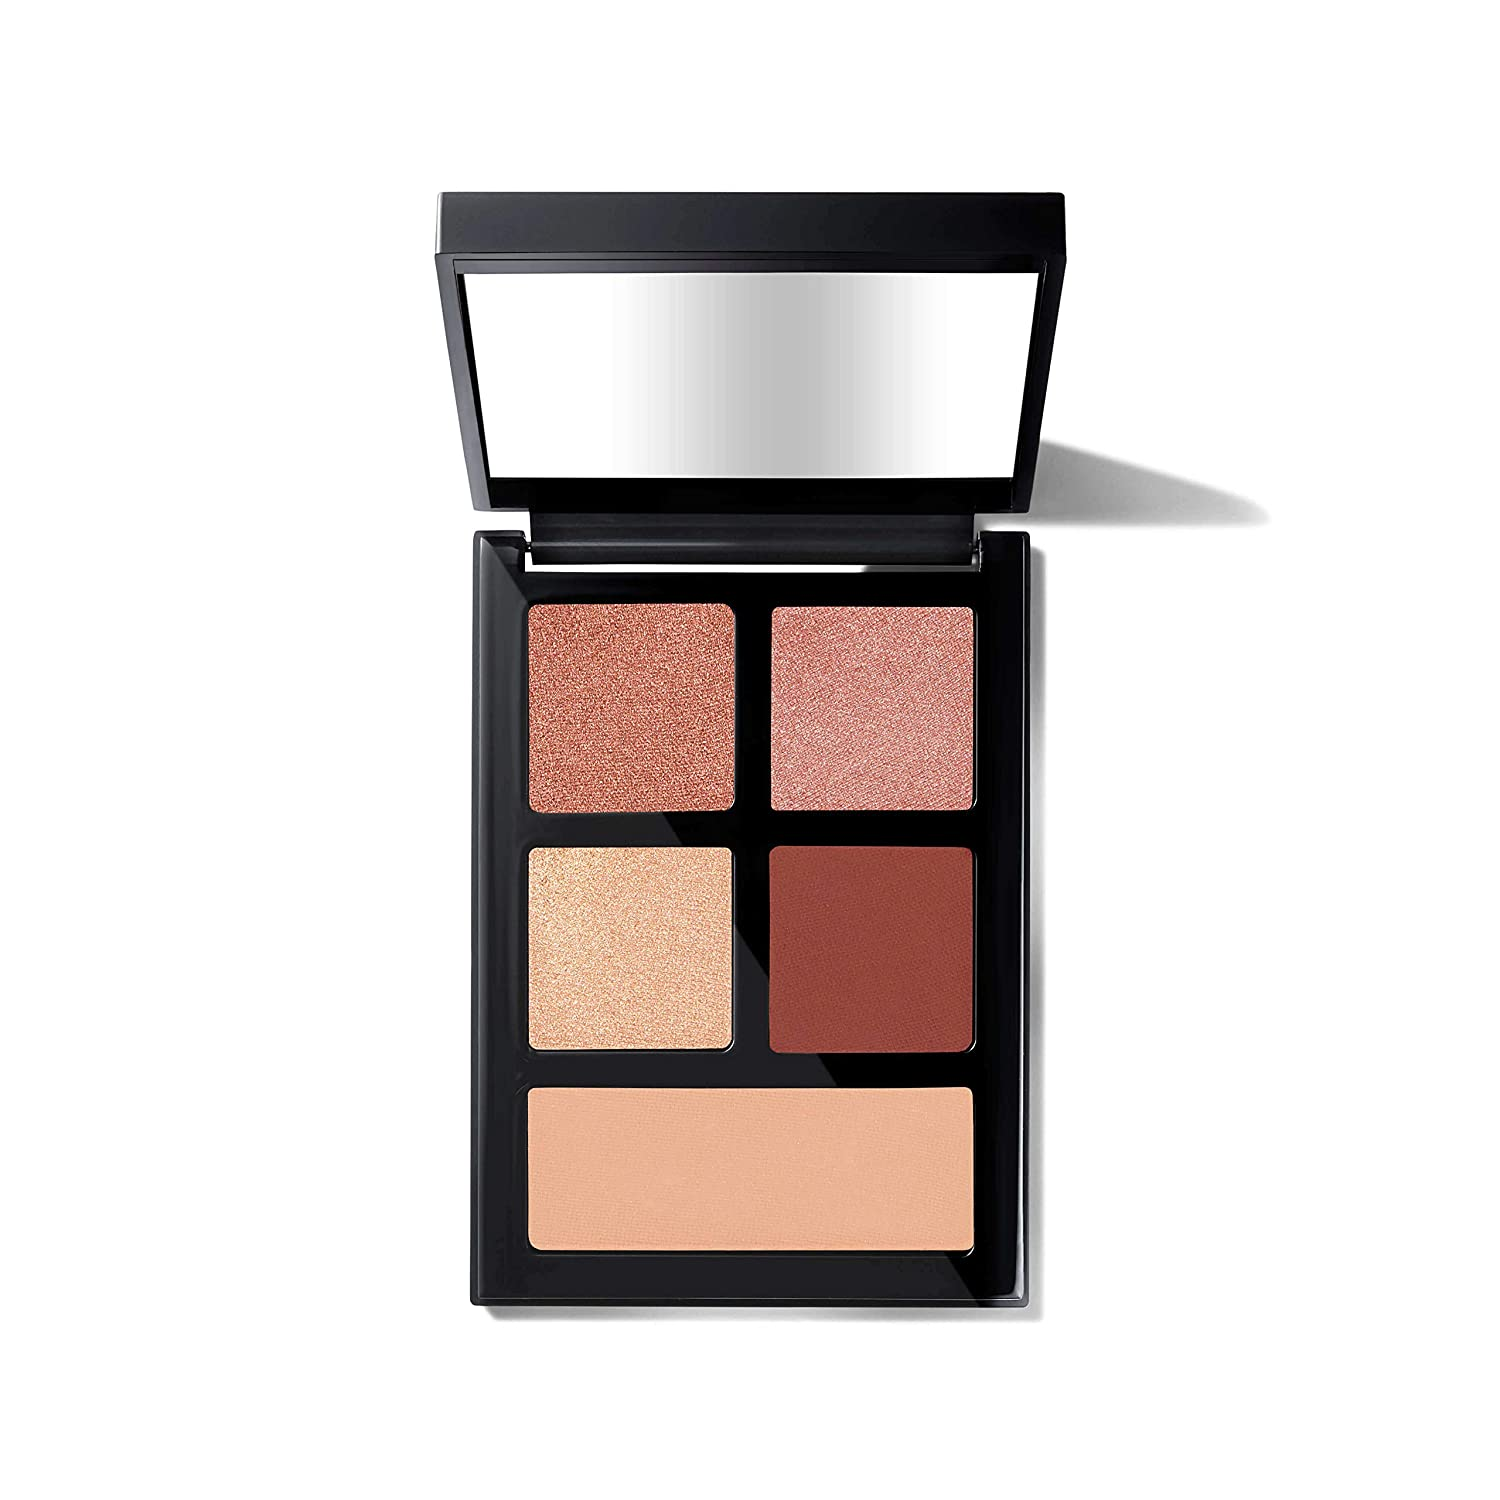 The Essential Multicolor Eye Shadow Palette – Warm Cranberry 1.13g